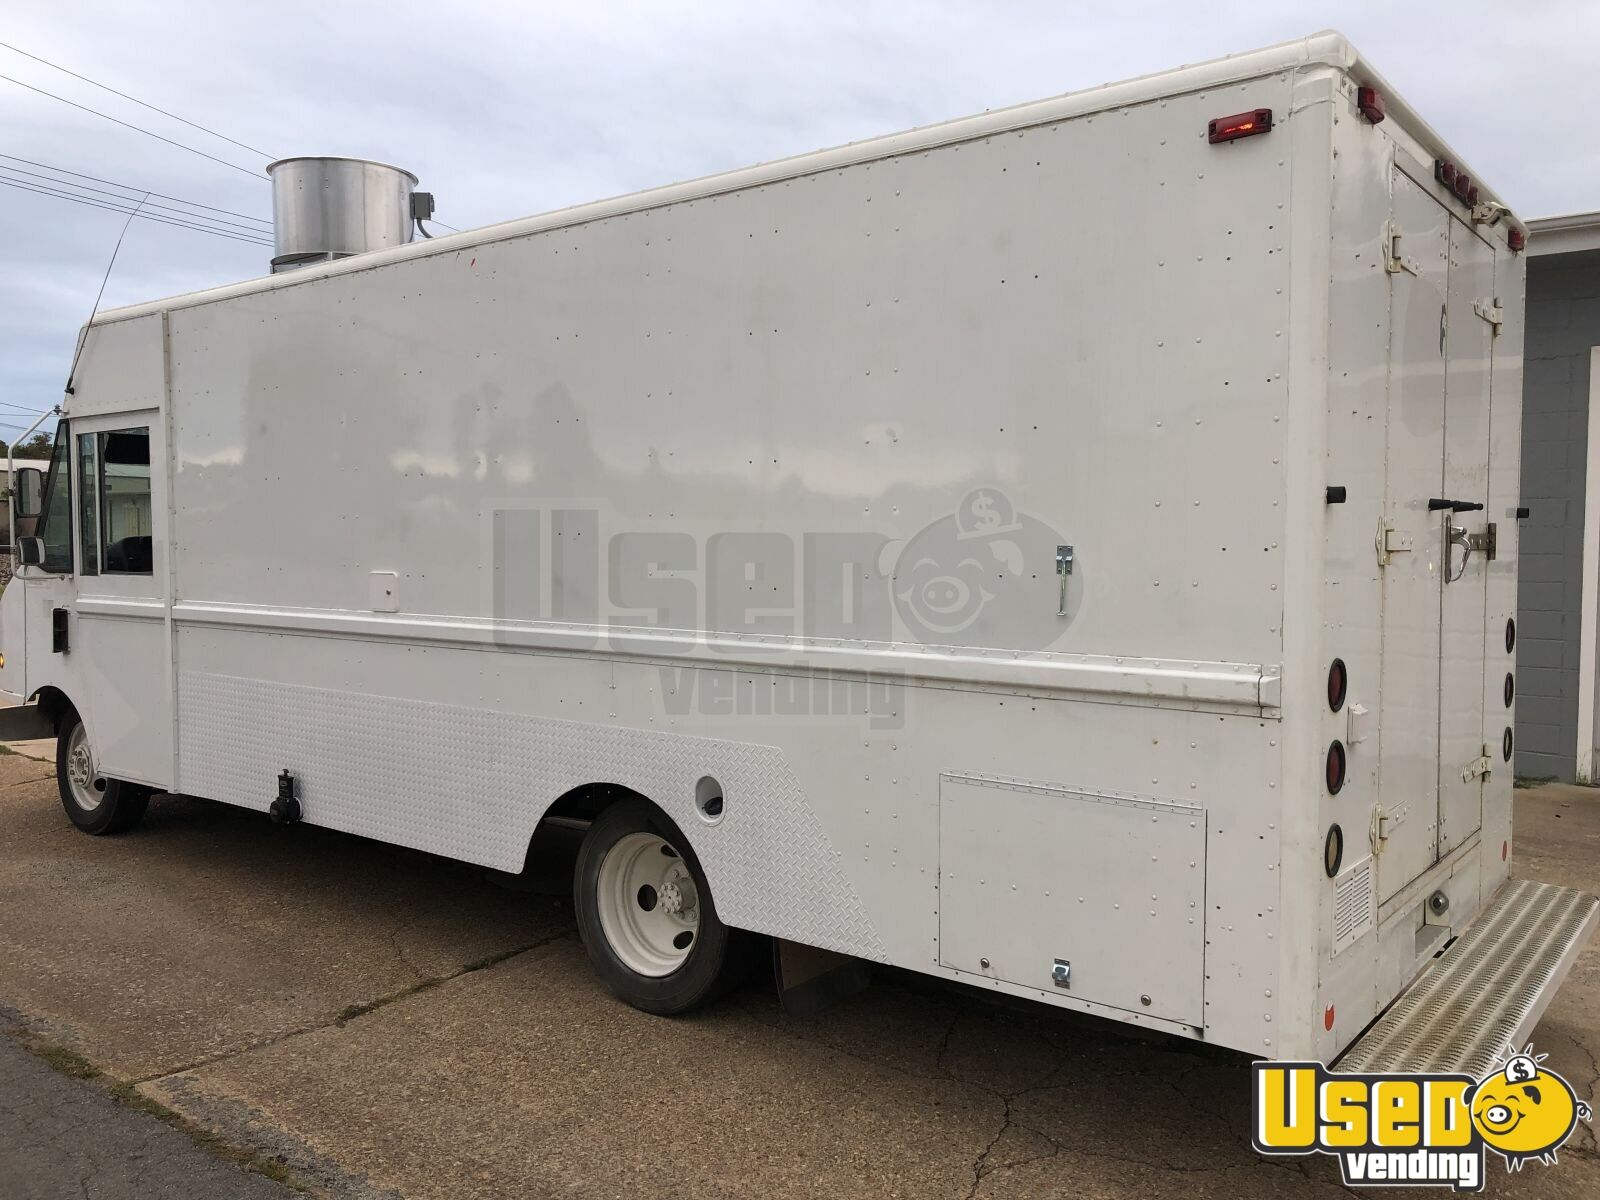 2003 Workhorse Mt45 All-purpose Food Truck Concession Window Missouri Diesel Engine for Sale - 2